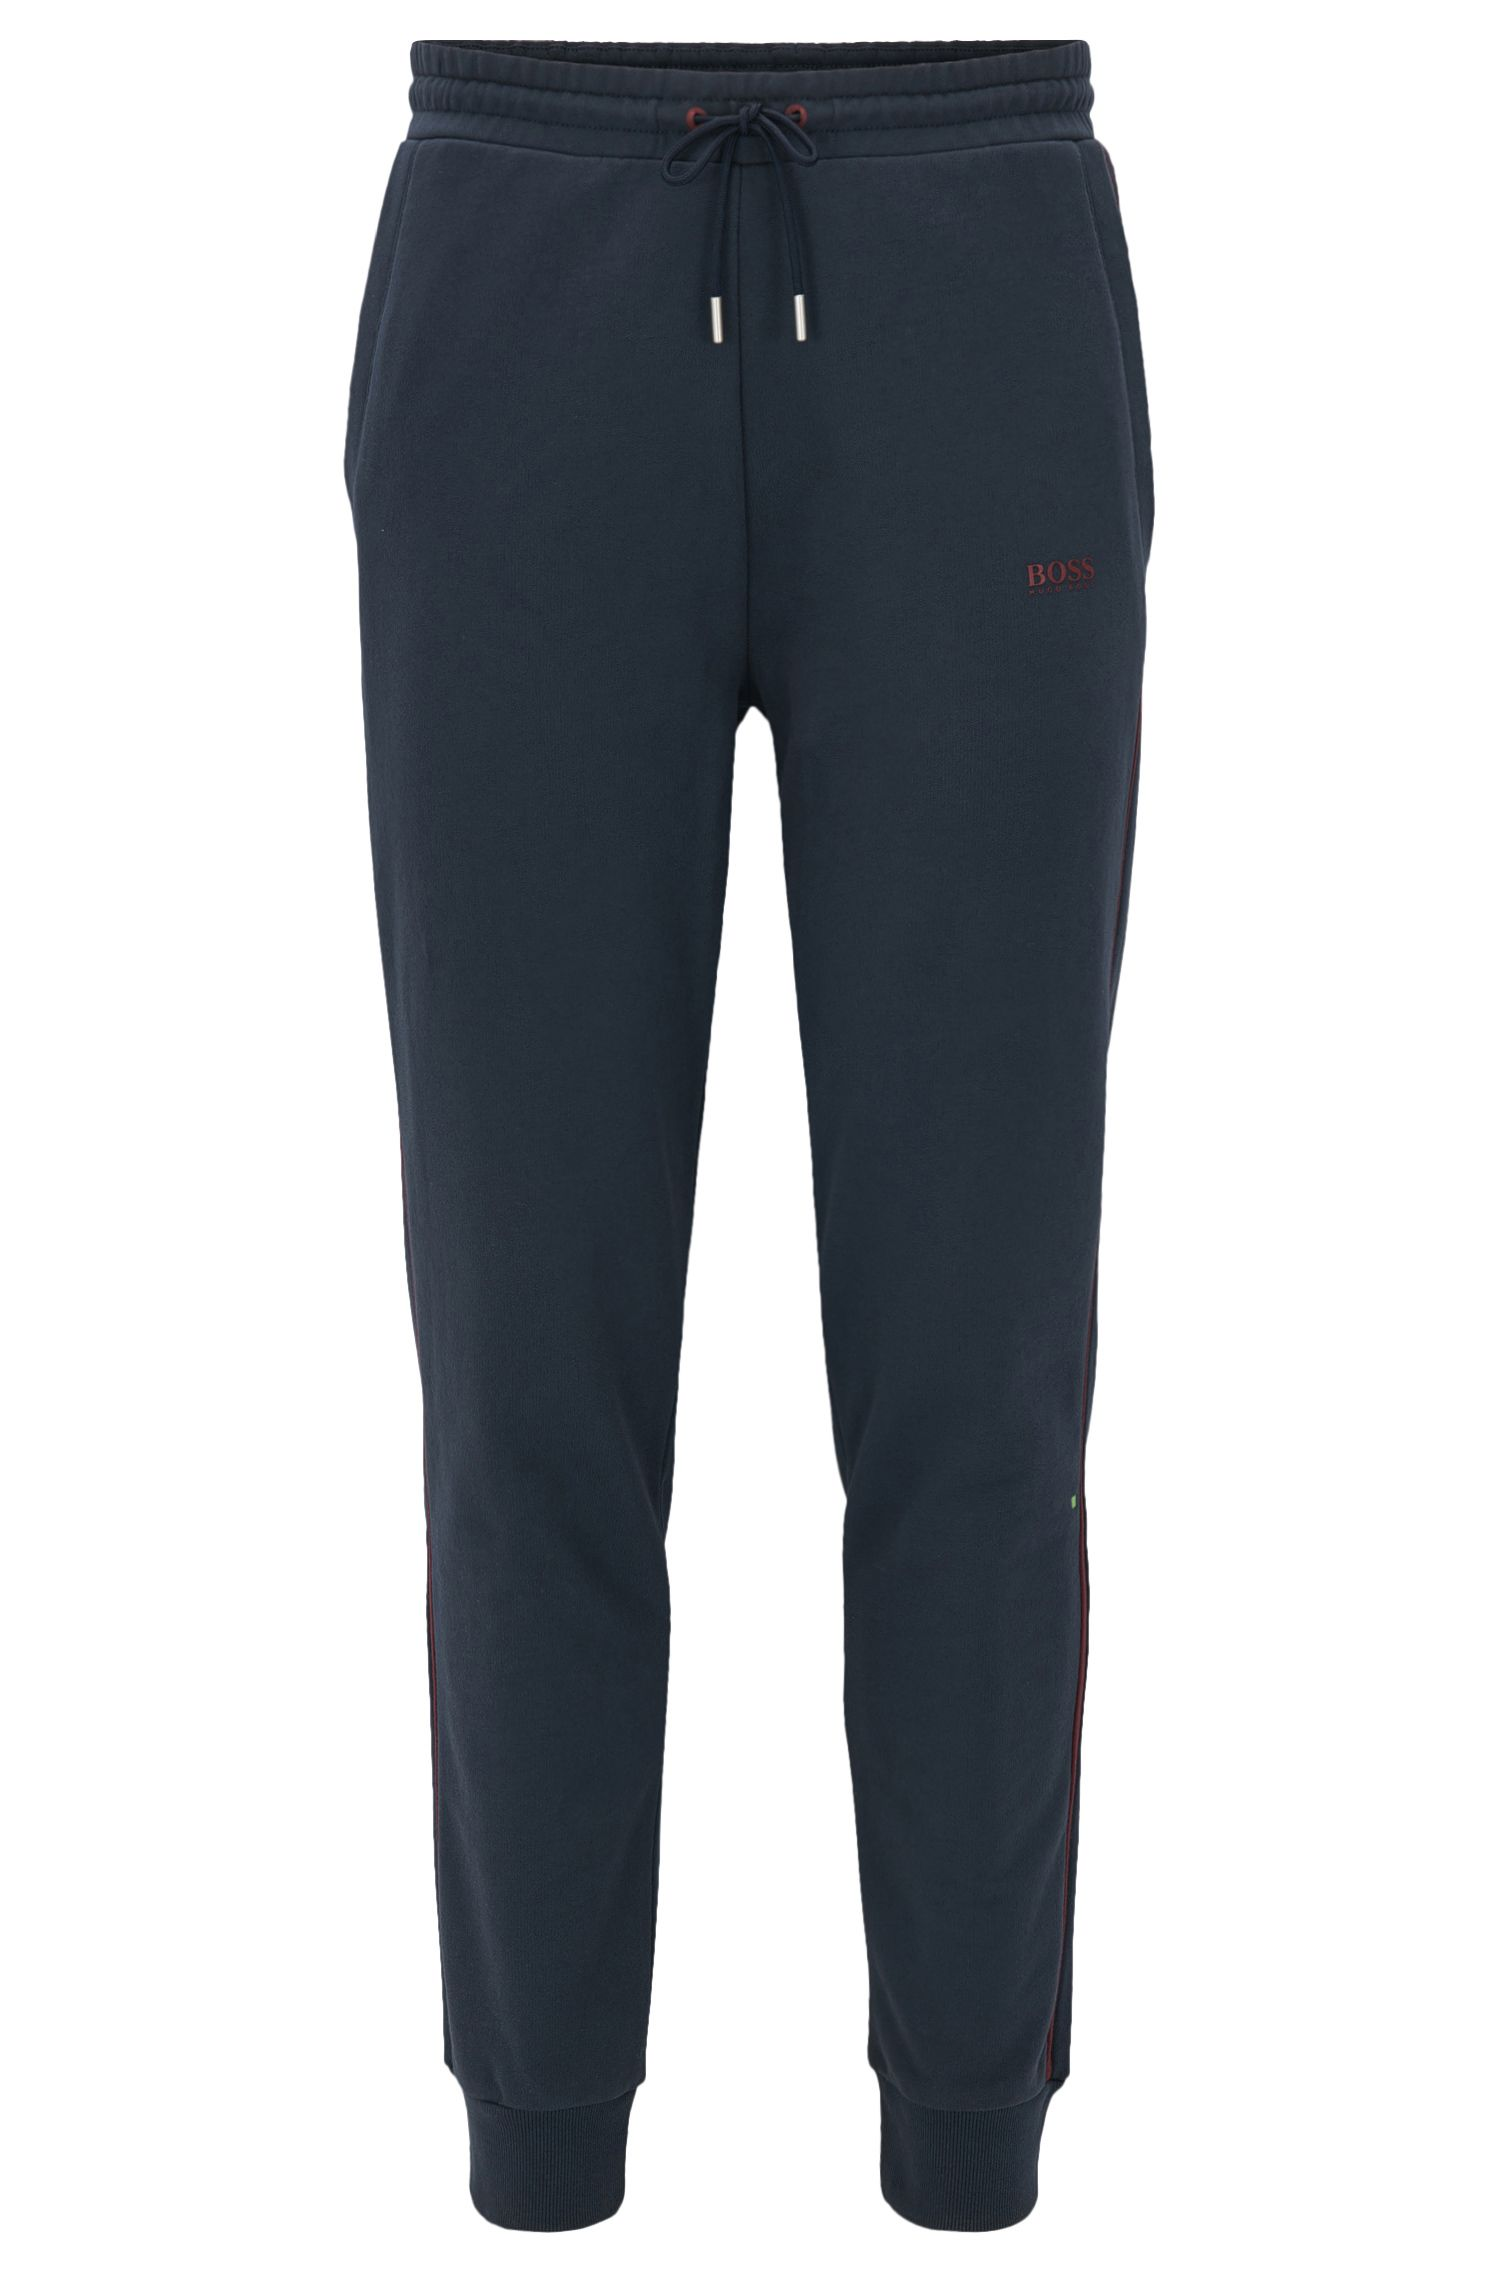 Pantaloni da jogging con bordi a coste in french terry